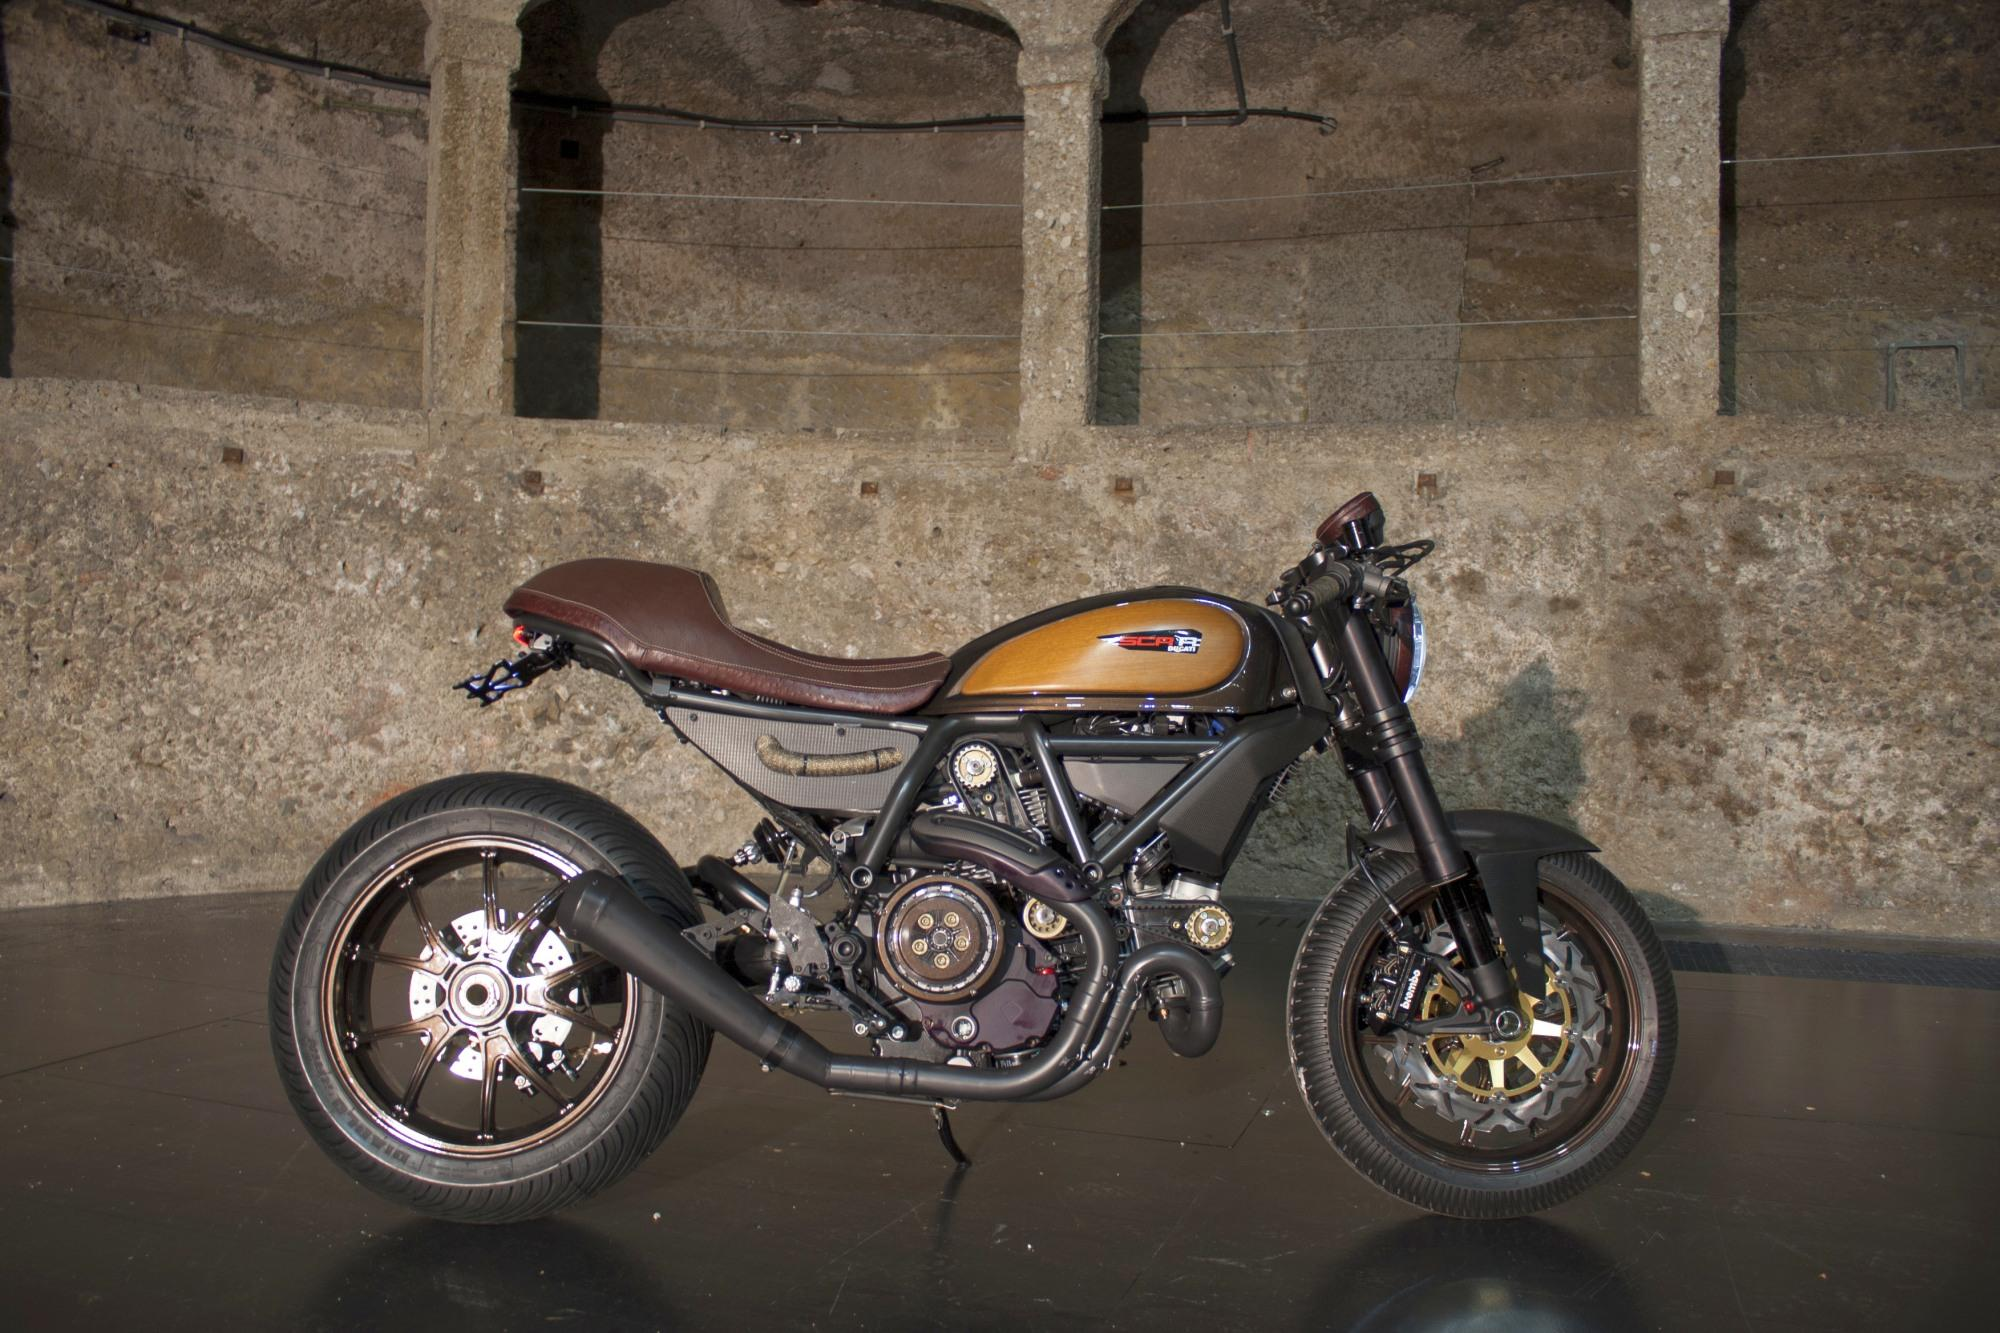 ducati scrambler rr motorrad fotos motorrad bilder. Black Bedroom Furniture Sets. Home Design Ideas